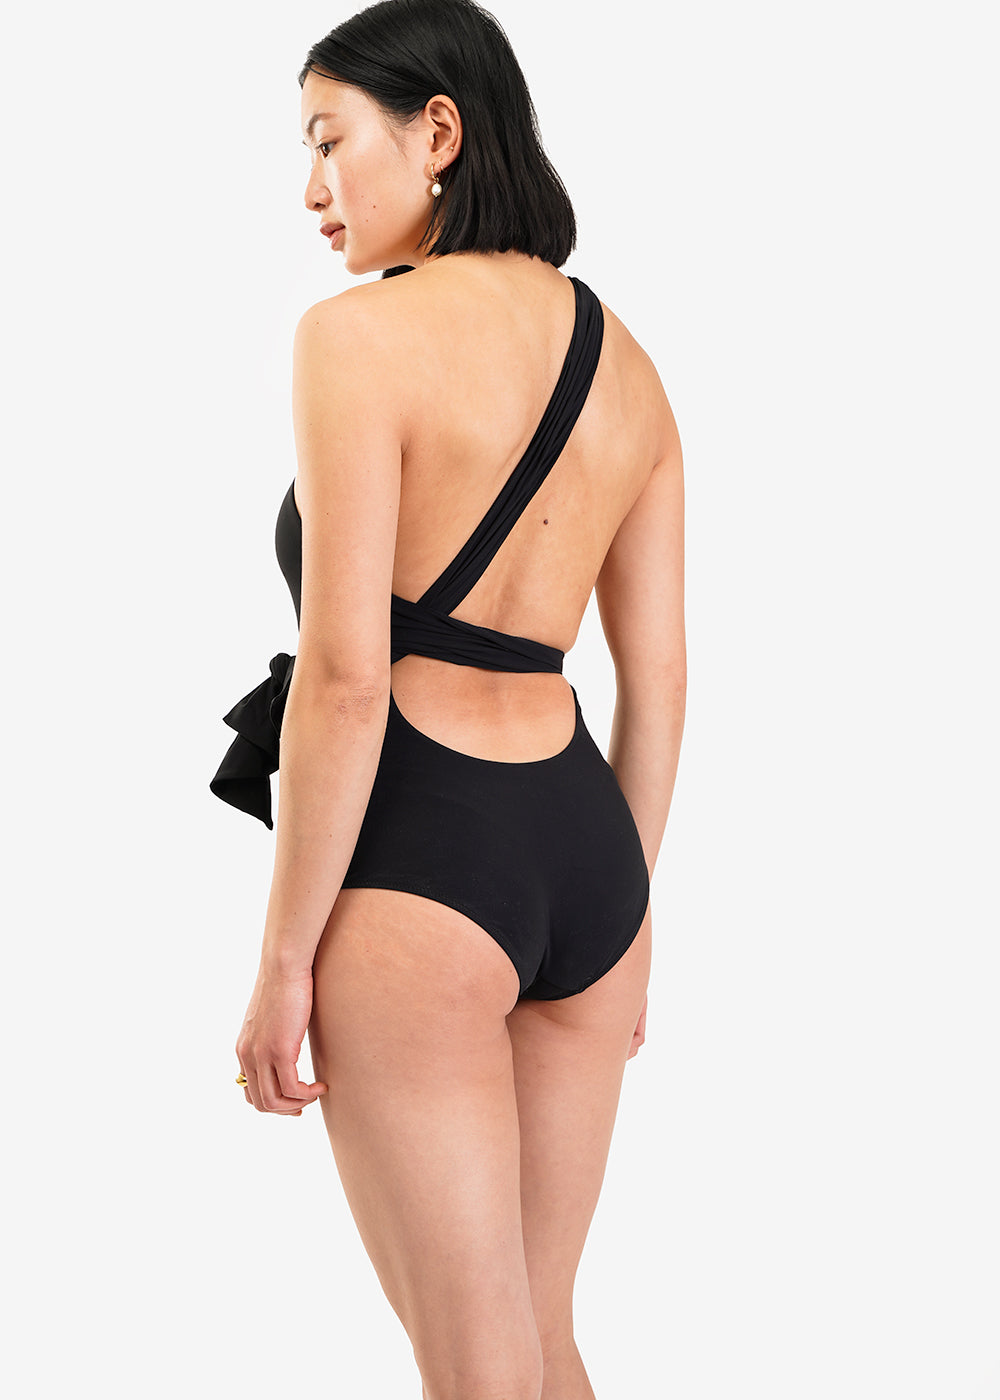 Araks Black Melika One Piece — Shop sustainable fashion and slow fashion at New Classics Studios